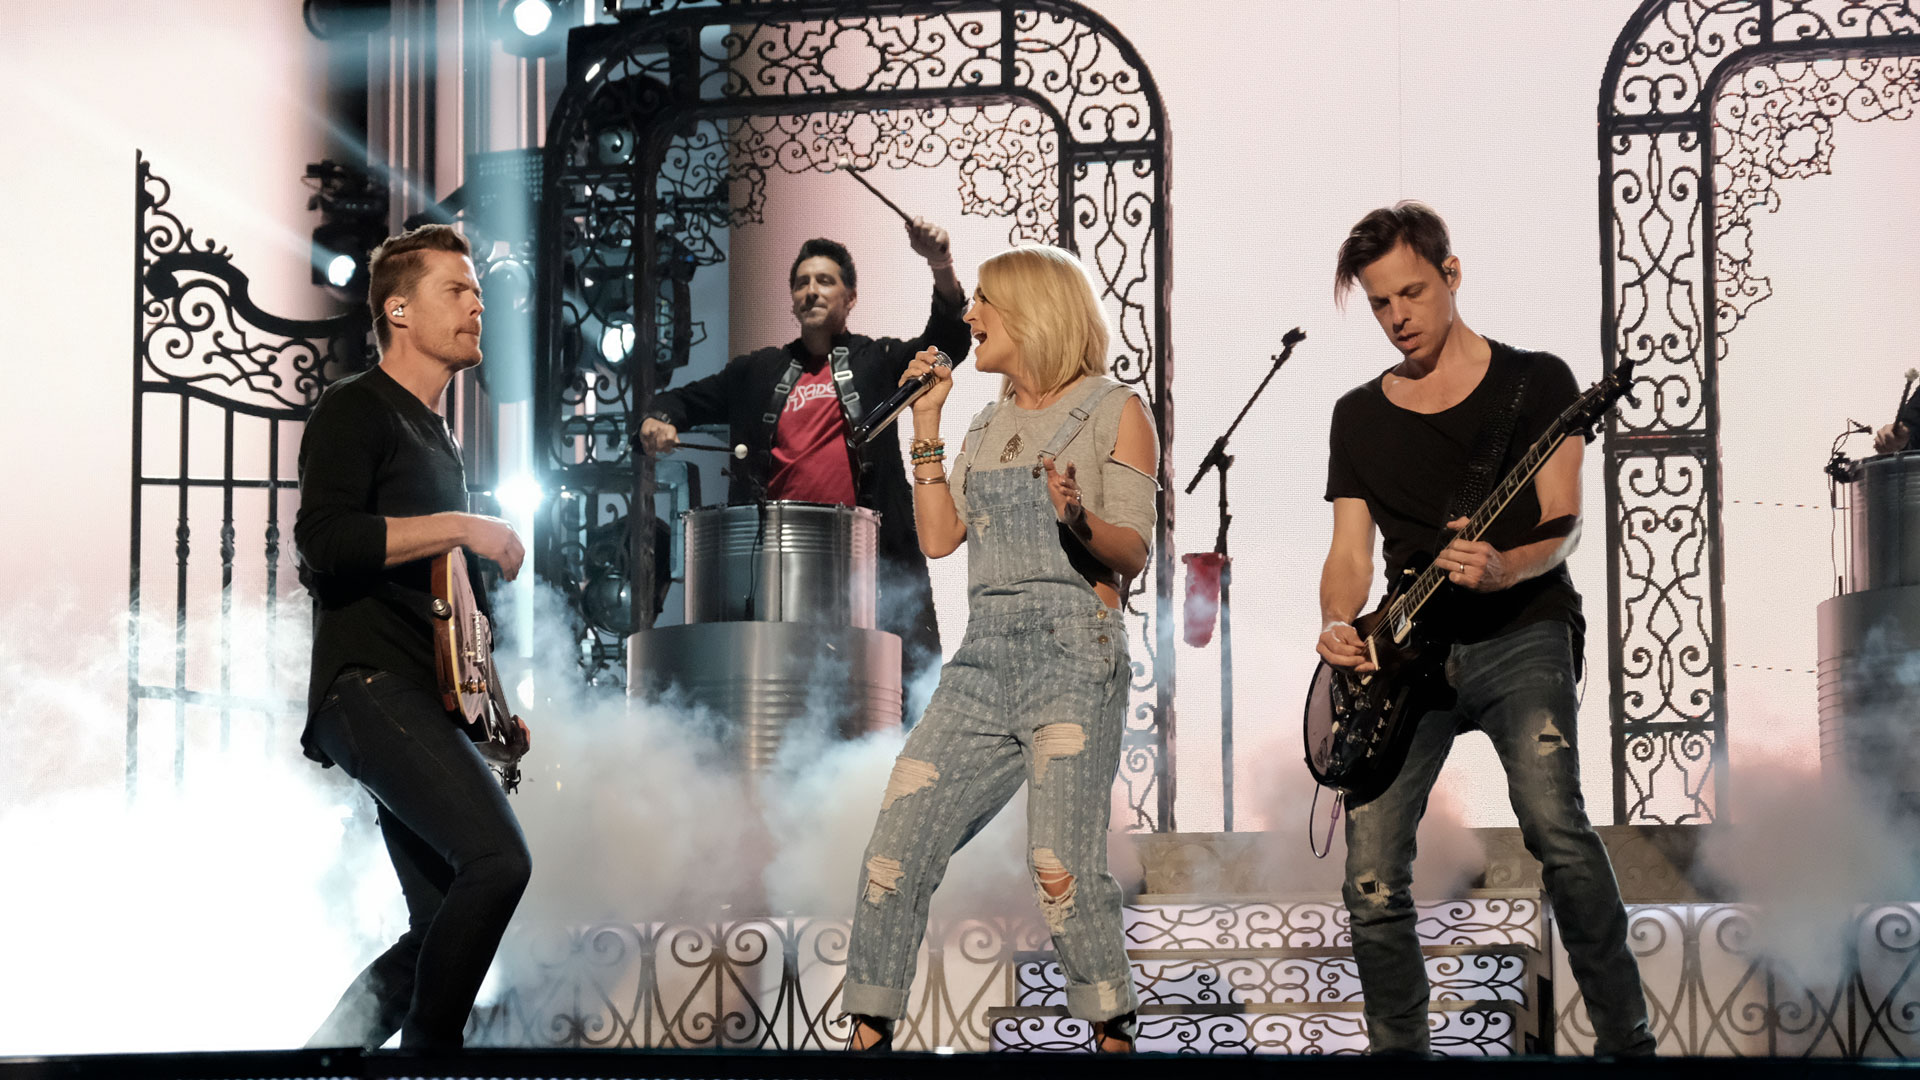 Carrie Underwood runs through an exciting performance